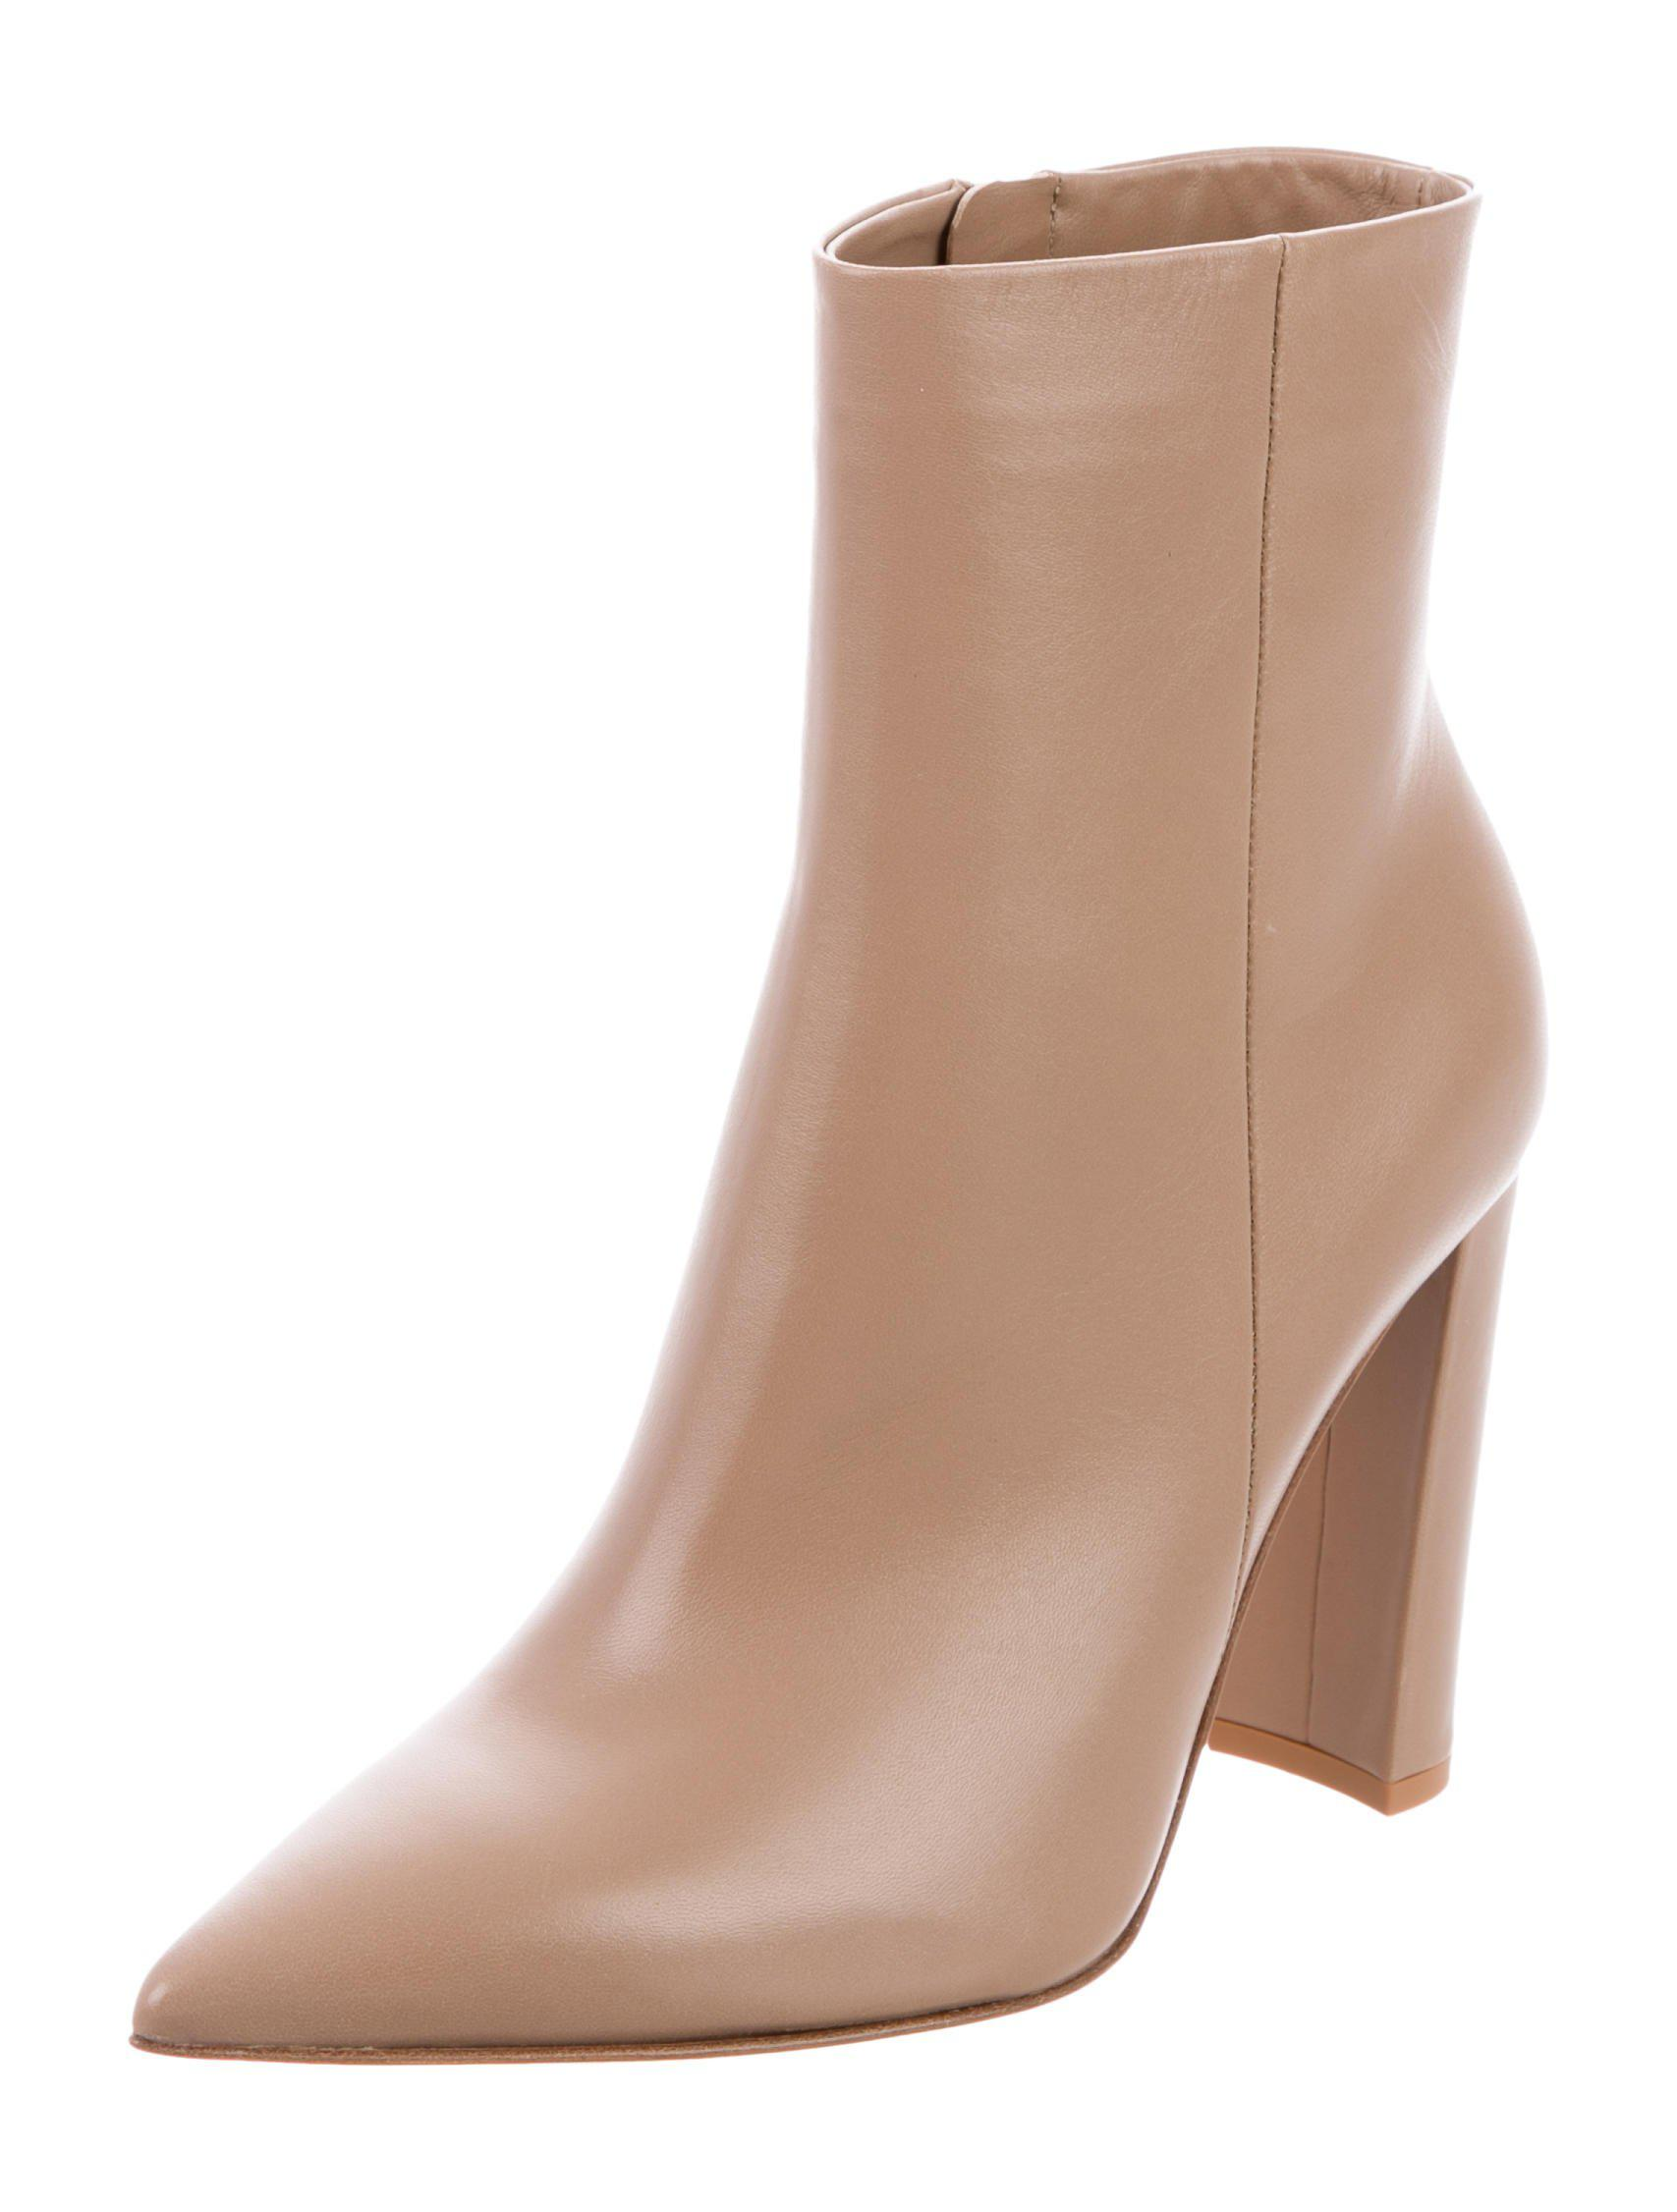 Gianvito Rossi Piper Leather Ankle Boots w/ Tags clearance browse official for sale f5q1F